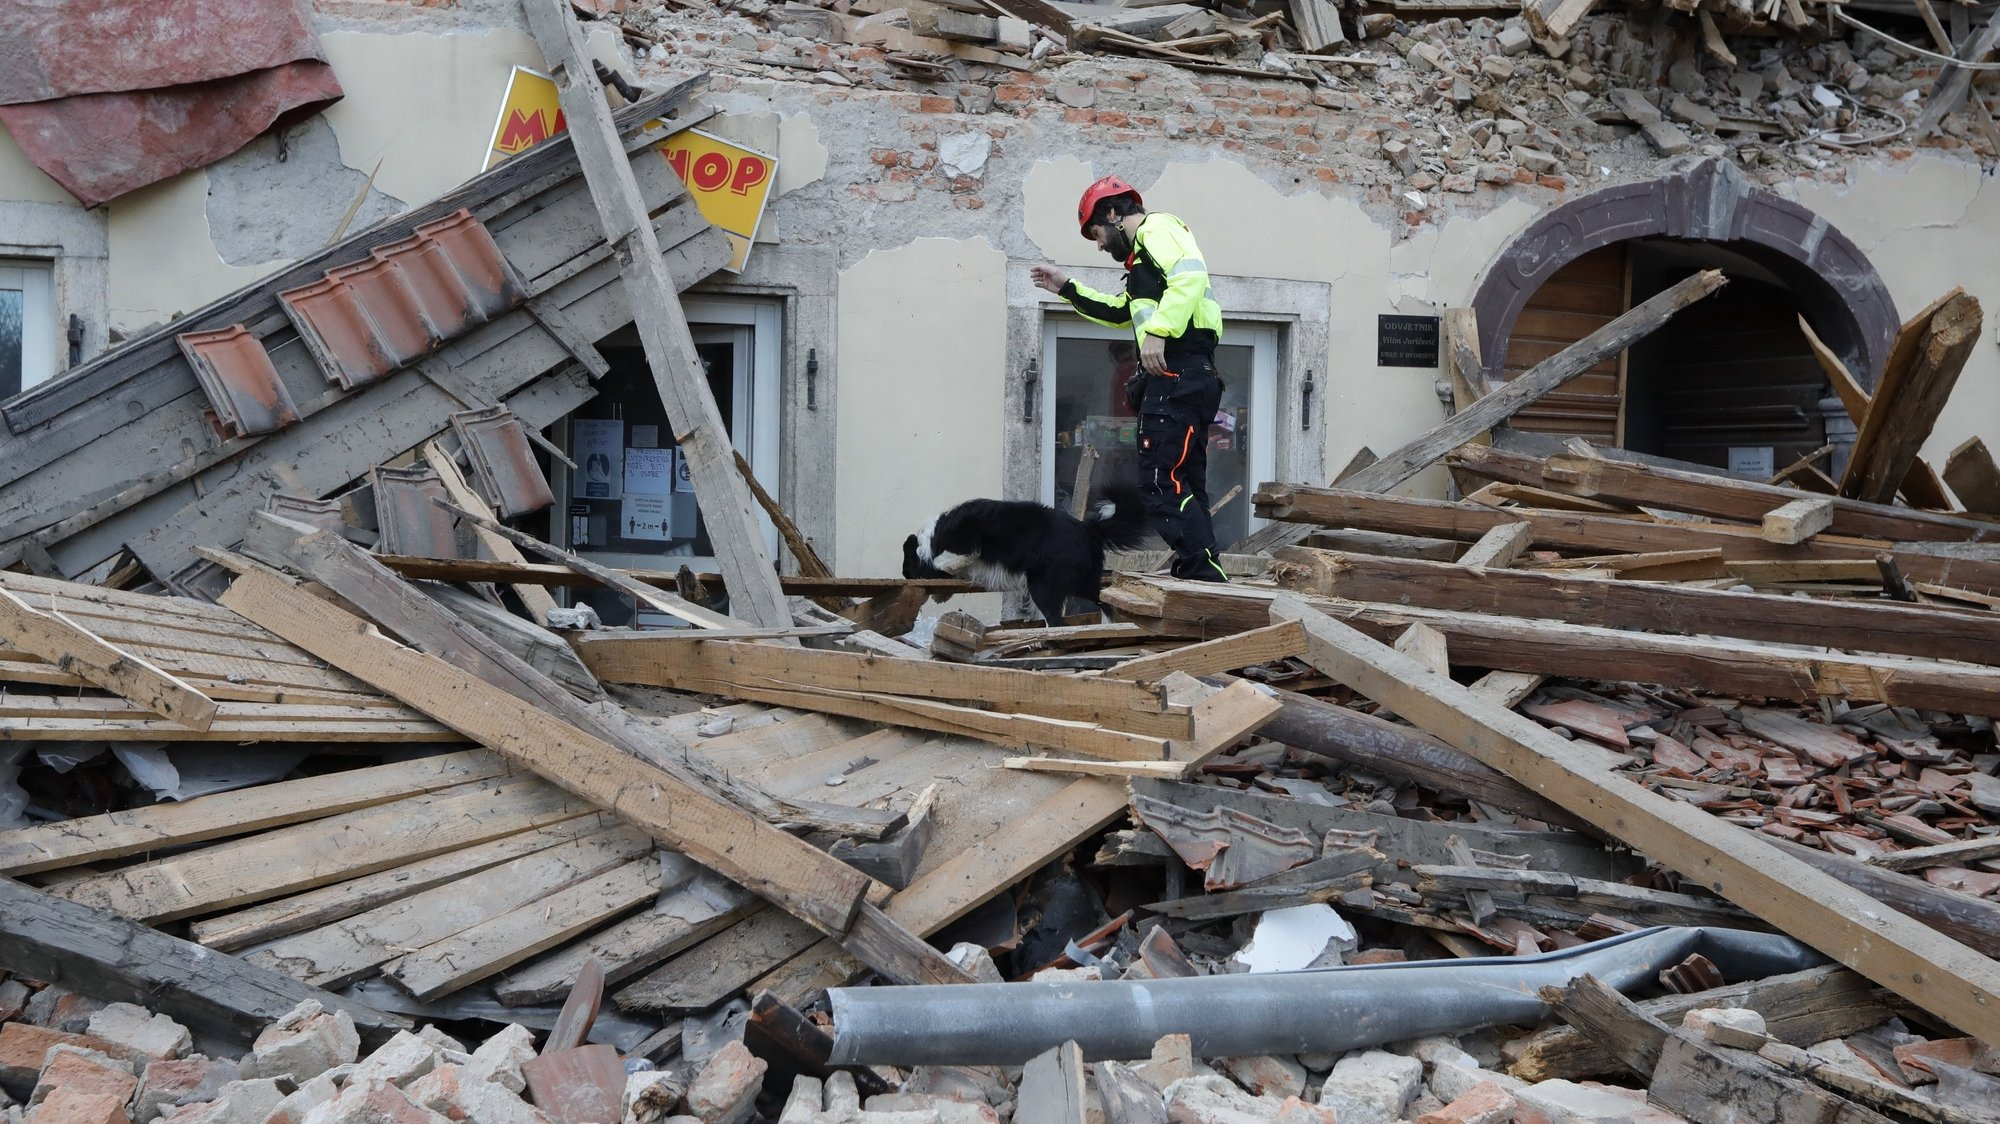 epa08909778 A rescue worker and his dog inspect buildings damaged in an earthquake in Petrinja, Croatia, 29 December 2020. A 6.4 magnitude earthquake struck around 3km west south west of the town with reports of many injuries and at least one death.  EPA/ANTONIO BAT